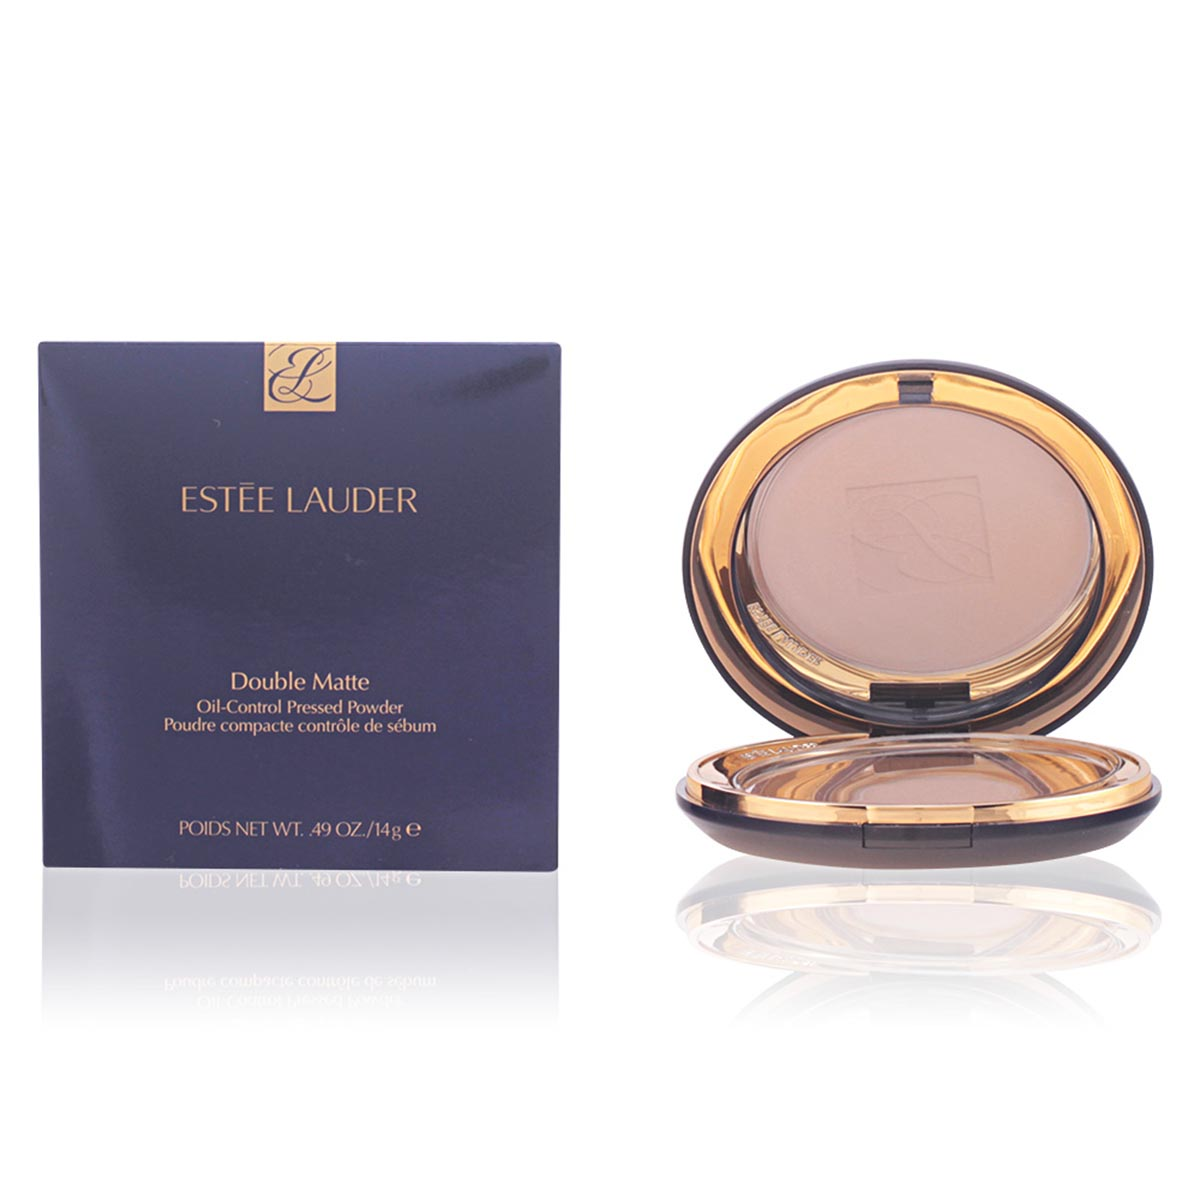 Estee lauder double matte oil control pressed powder 02